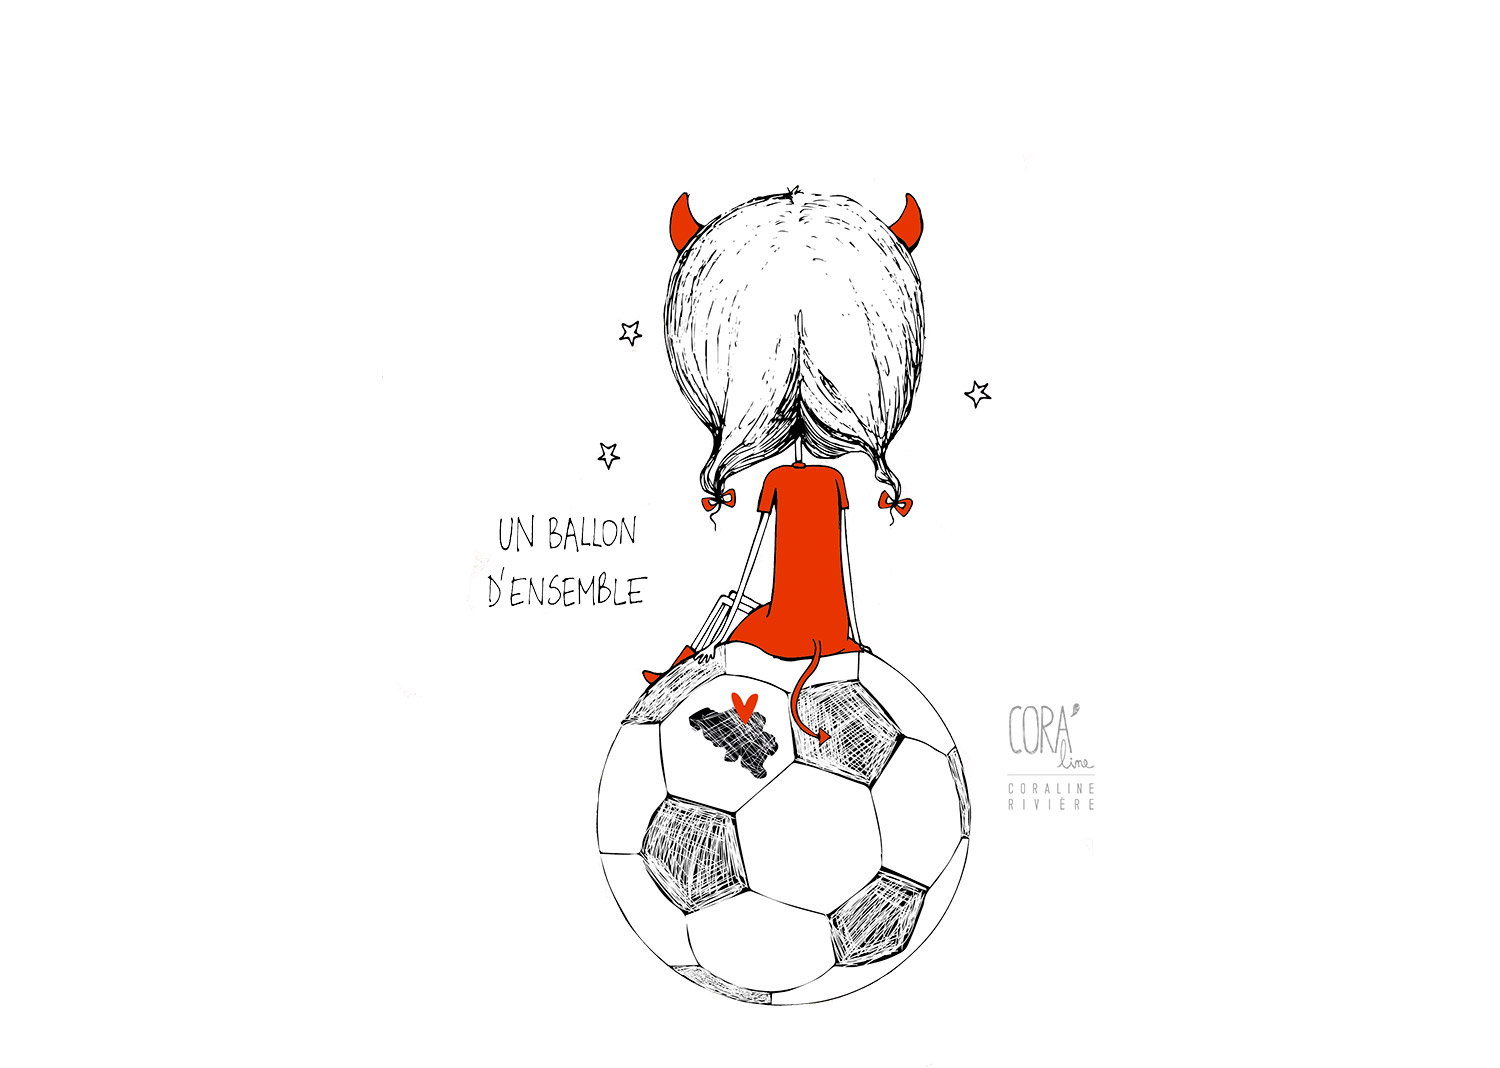 dessin ensemble footbal diables rouges belgique coupe europe 2016